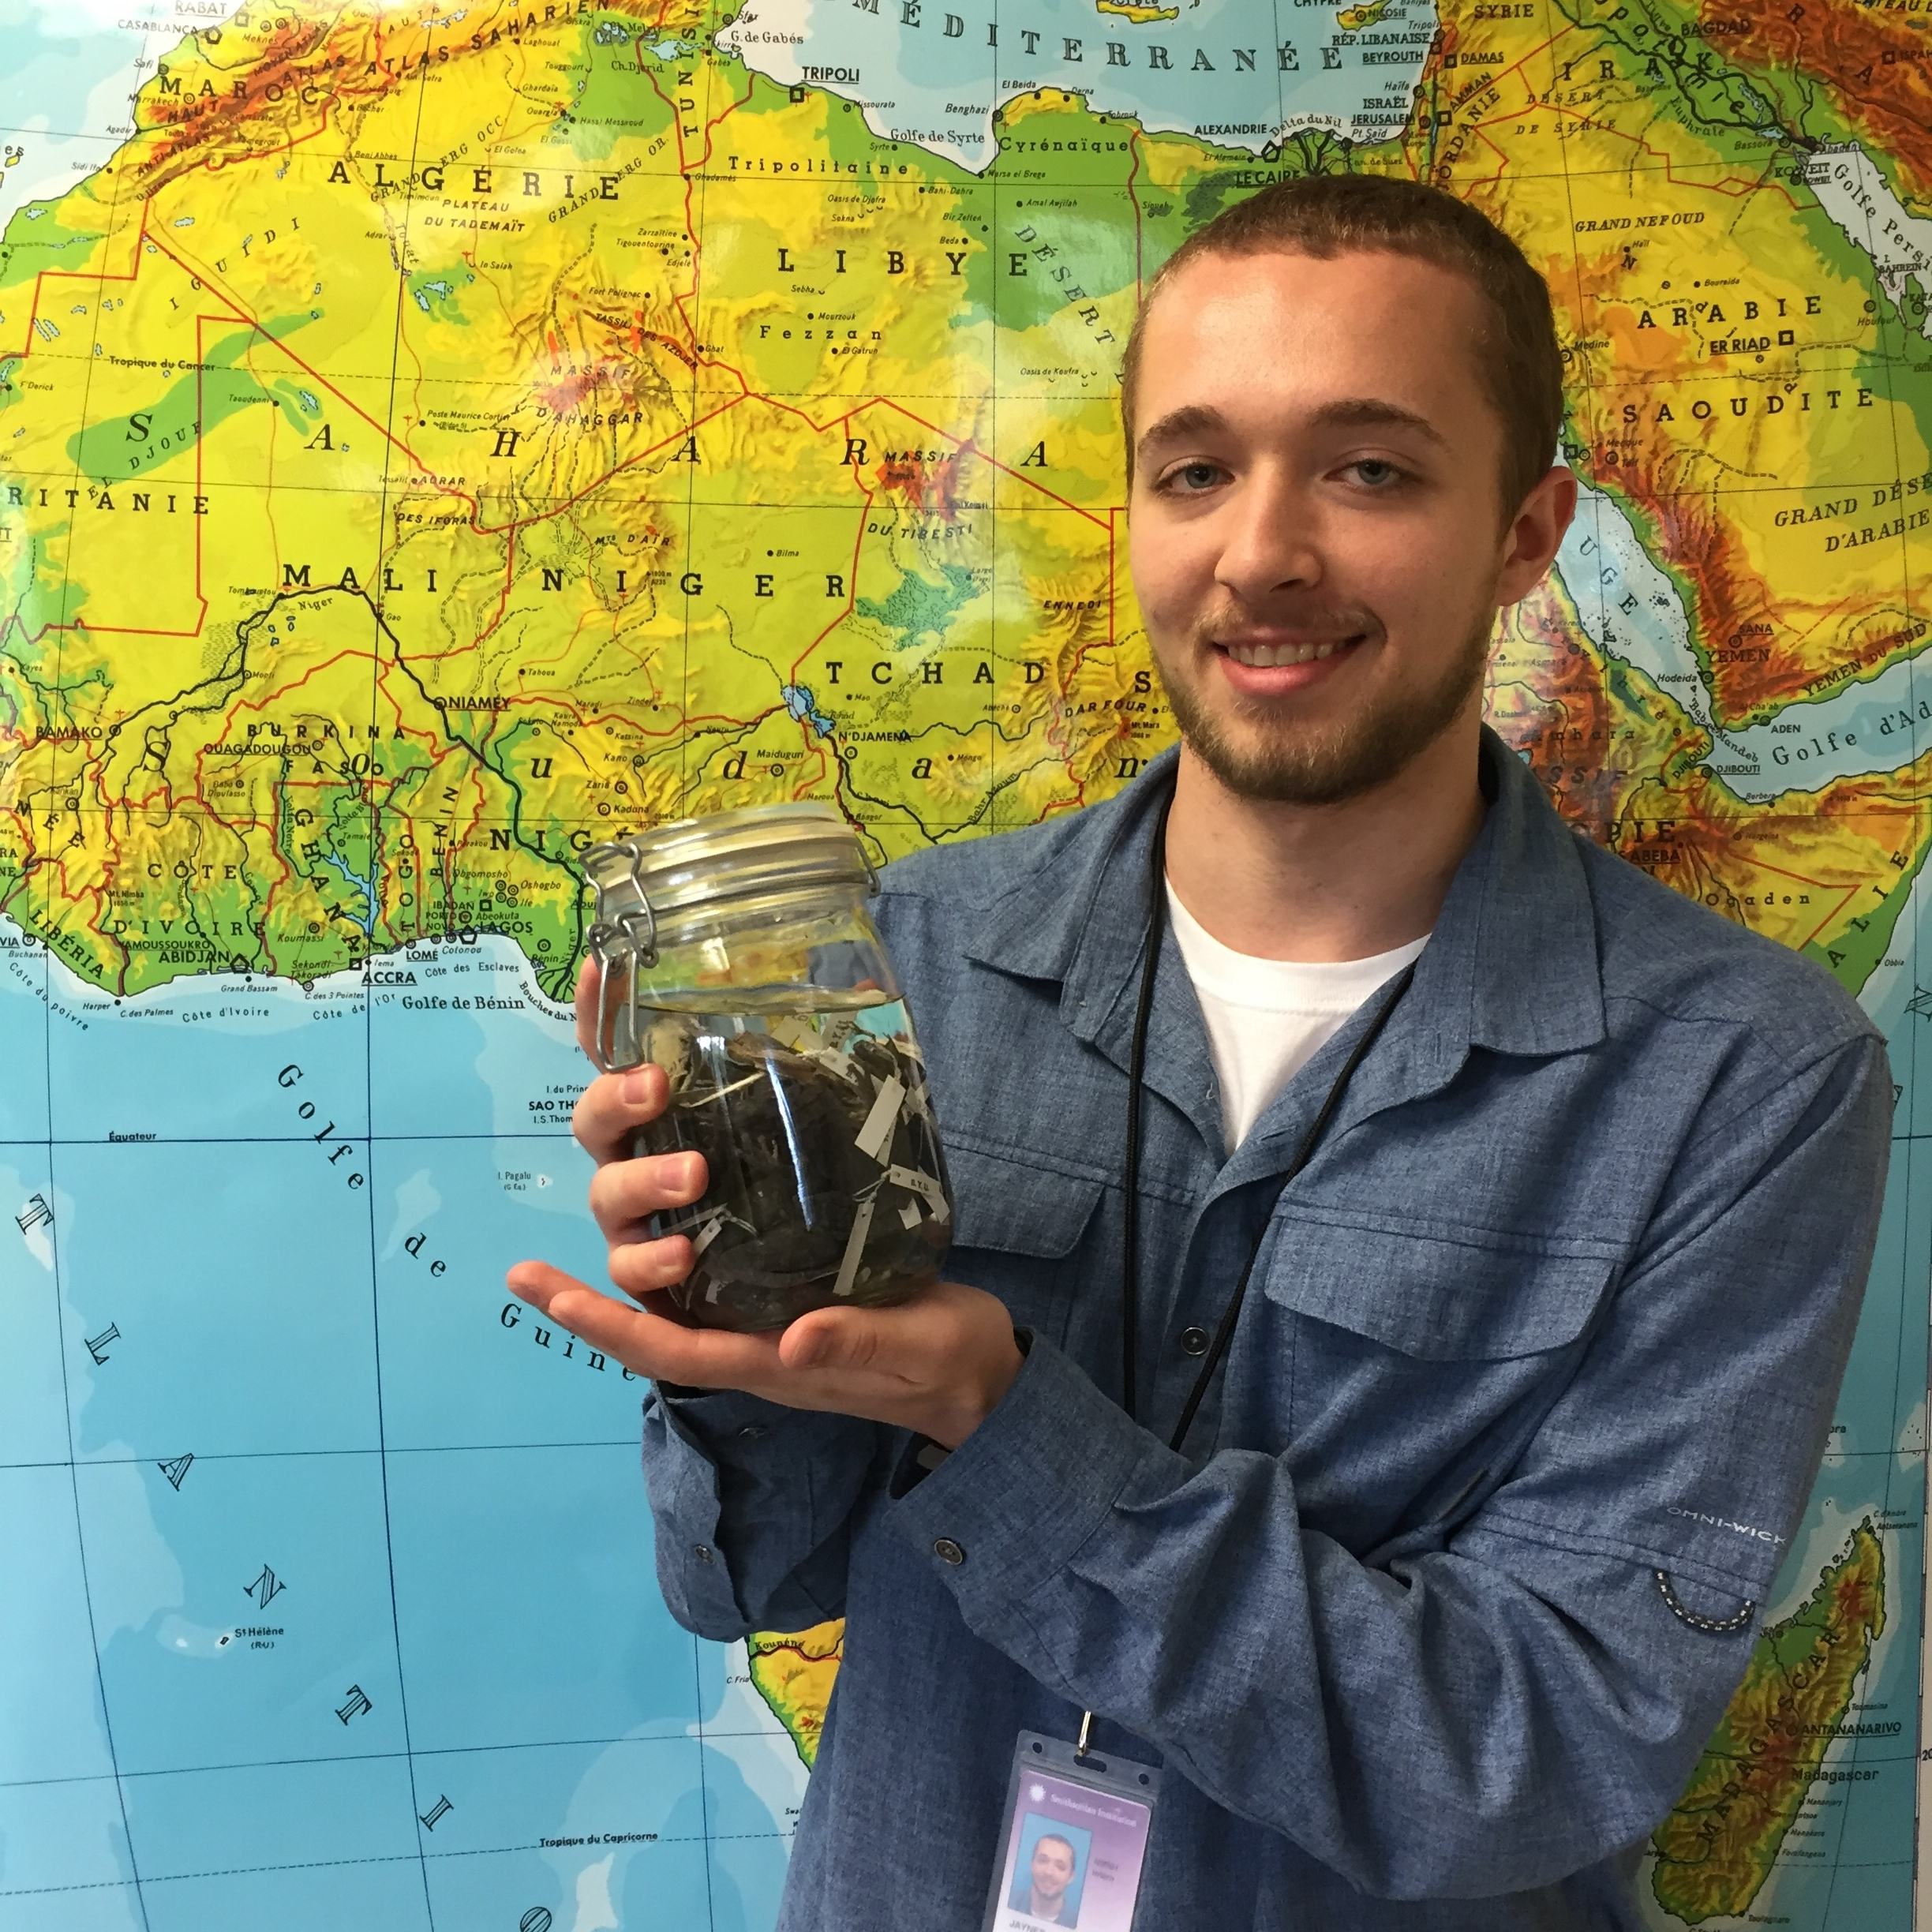 Kyle Jaynes - B.A. Environmental Science + Biology, Adrian CollegePh.D. student Ecology, Evolutionary Biology + Behavior, Michigan State UniversityKyle was an intern in the NSF-REU Natural History Research Experience program at the National Museum of Natural History in the Bell Lab for summer 2017 and continued his research on Leptopelis tree frogs as his senior research project at Adrian College. Kyle joined Dr. Sarah Fitzpatrick's lab at Michigan State University in fall 2018!